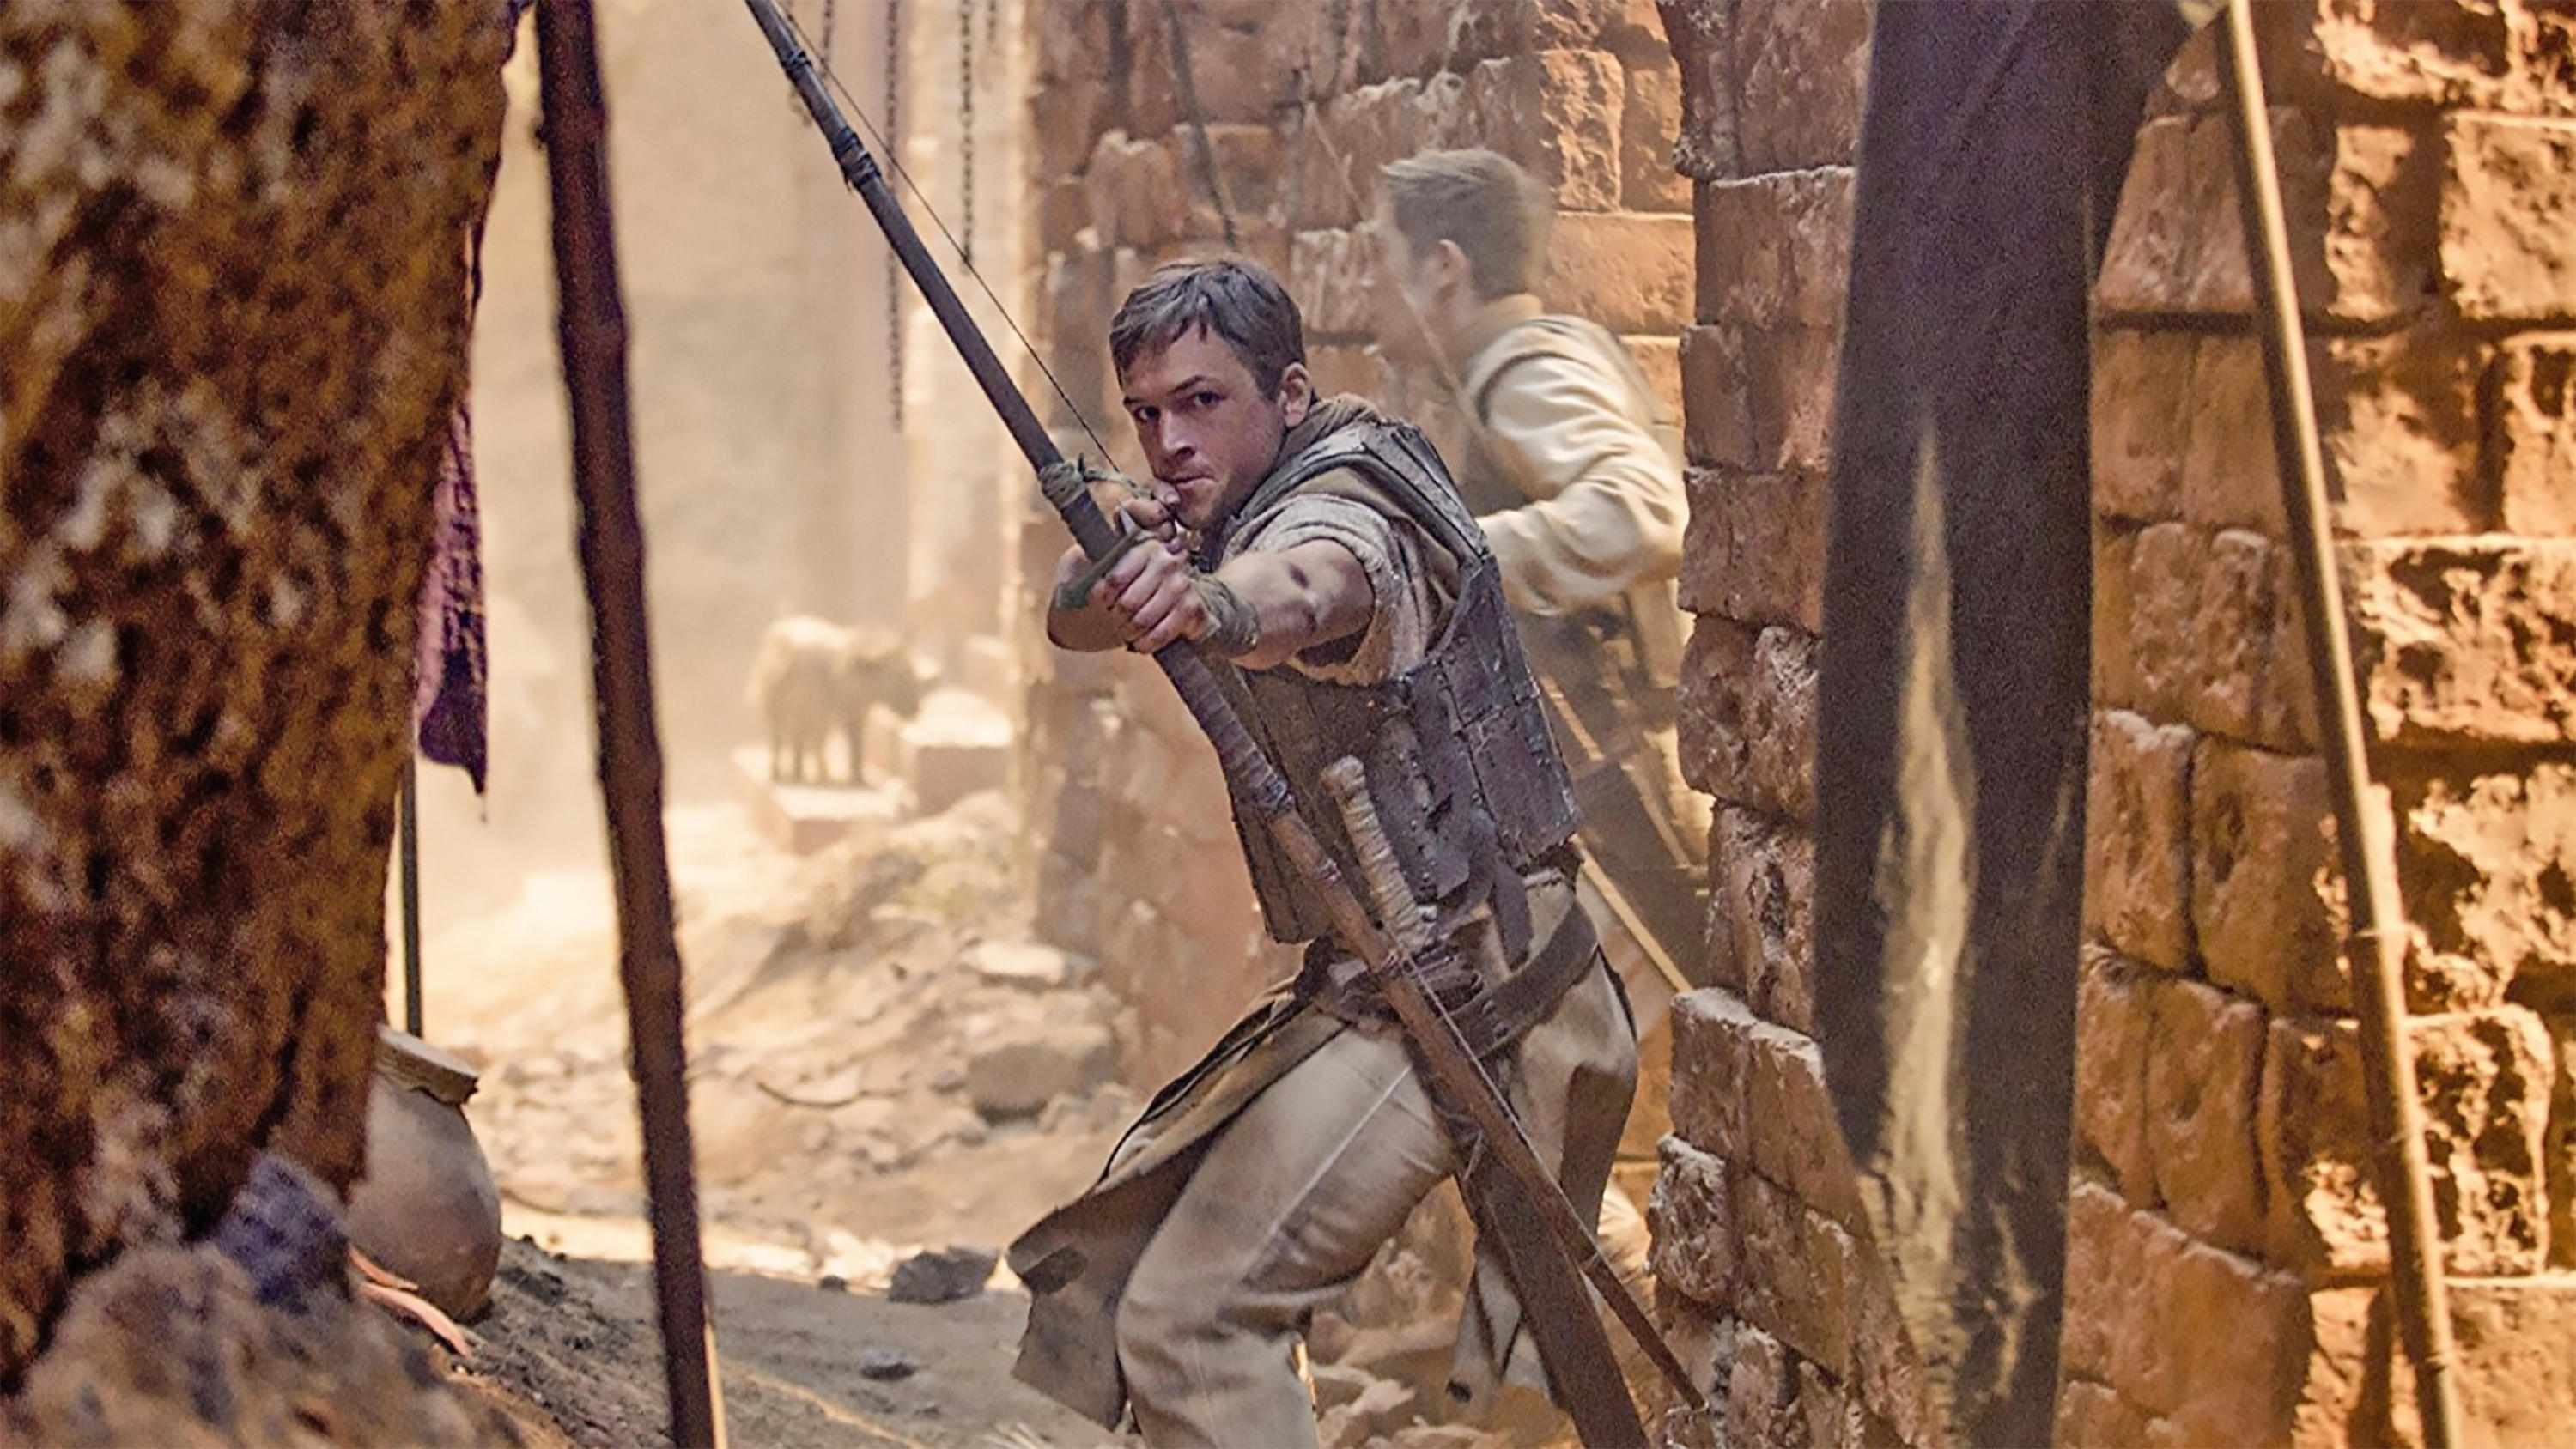 A still from the 2018 film 'Robin hood', in which actor Taron Egerton plays the legendary English archer. (Photo by Alamy)